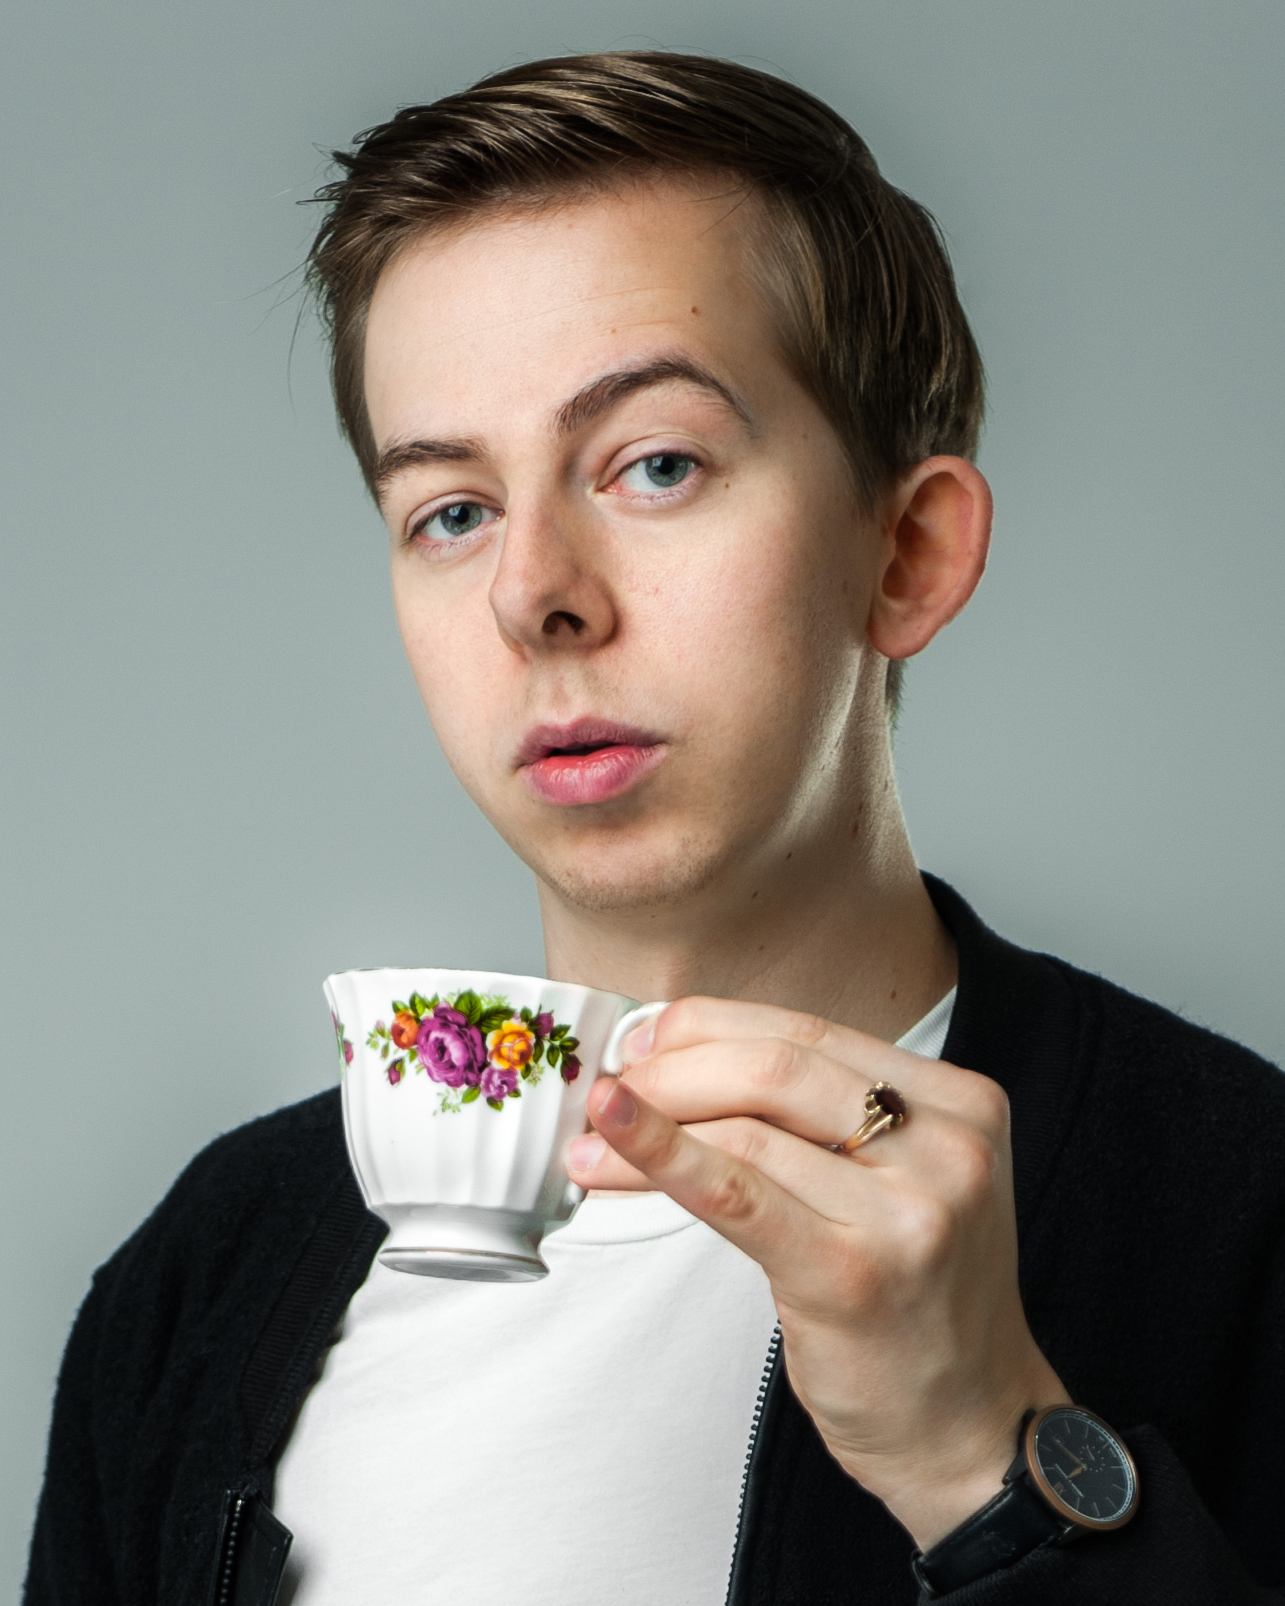 Chris Turner Teacup Headshot.jpg